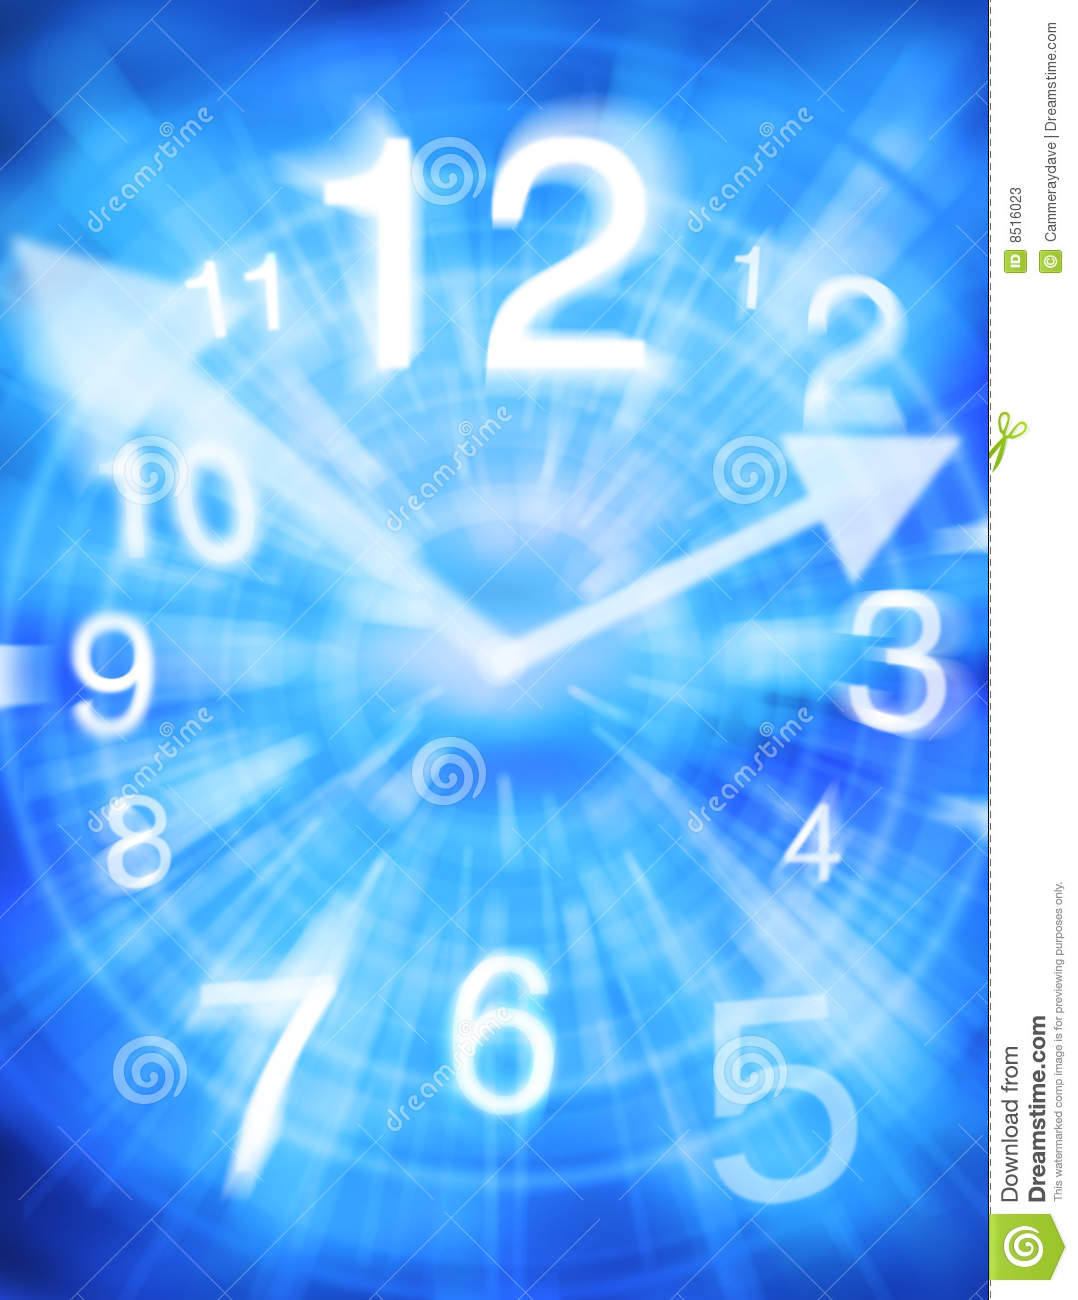 abstract time clock background stock photos image 8516023 free vector clock hands free vector clock icon